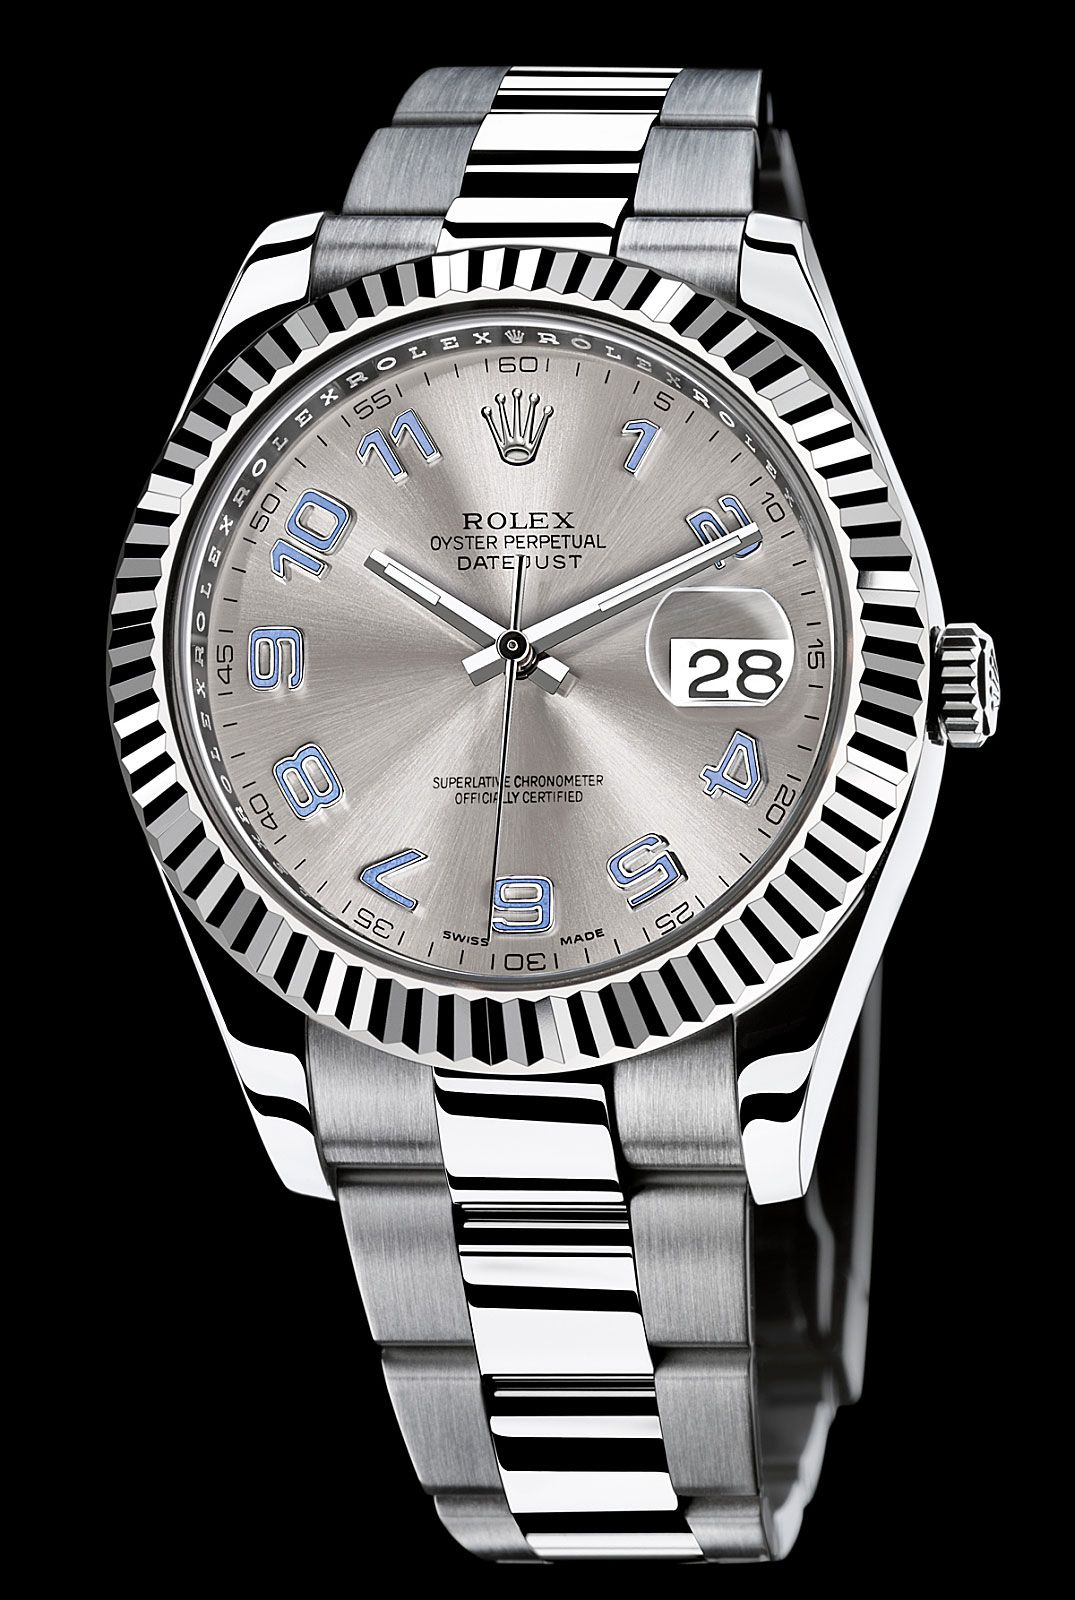 Rolex Date Just II 3cd13fa691